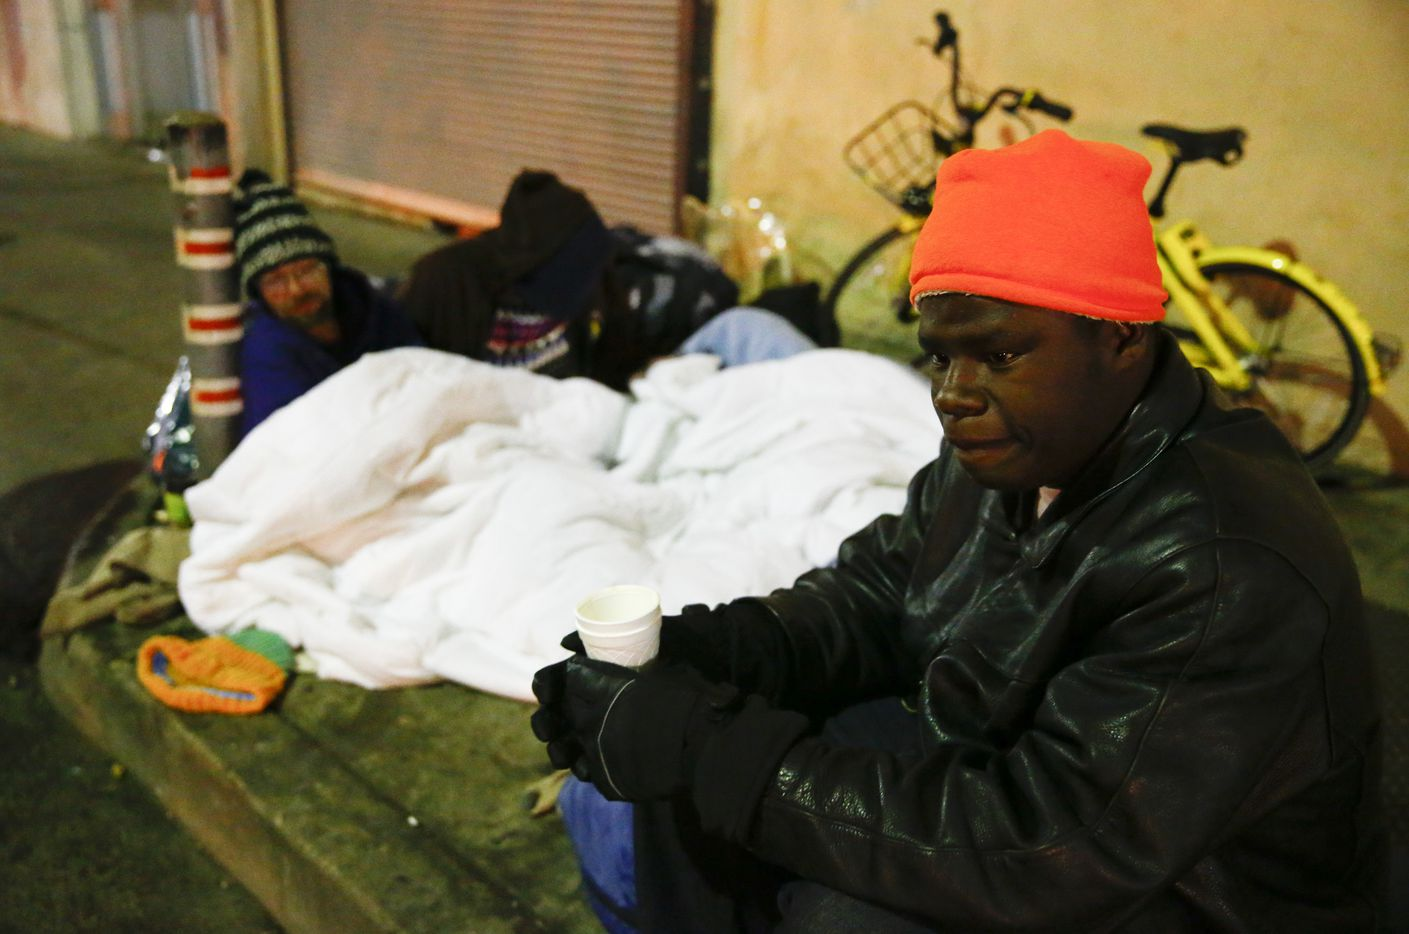 Dawaylon Raymond, 20, (right) drinks some donated coffee as Ryan Rule, 39, (left) and his wife, Deshonda Rule, 33, sleep on top of an exhaust vent next to The Stewpot on Park Ave in downtown Dallas on Jan. 16, 2018. Temperatures sunk into the teens throughout the night.  (Nathan Hunsinger/The Dallas Morning News)